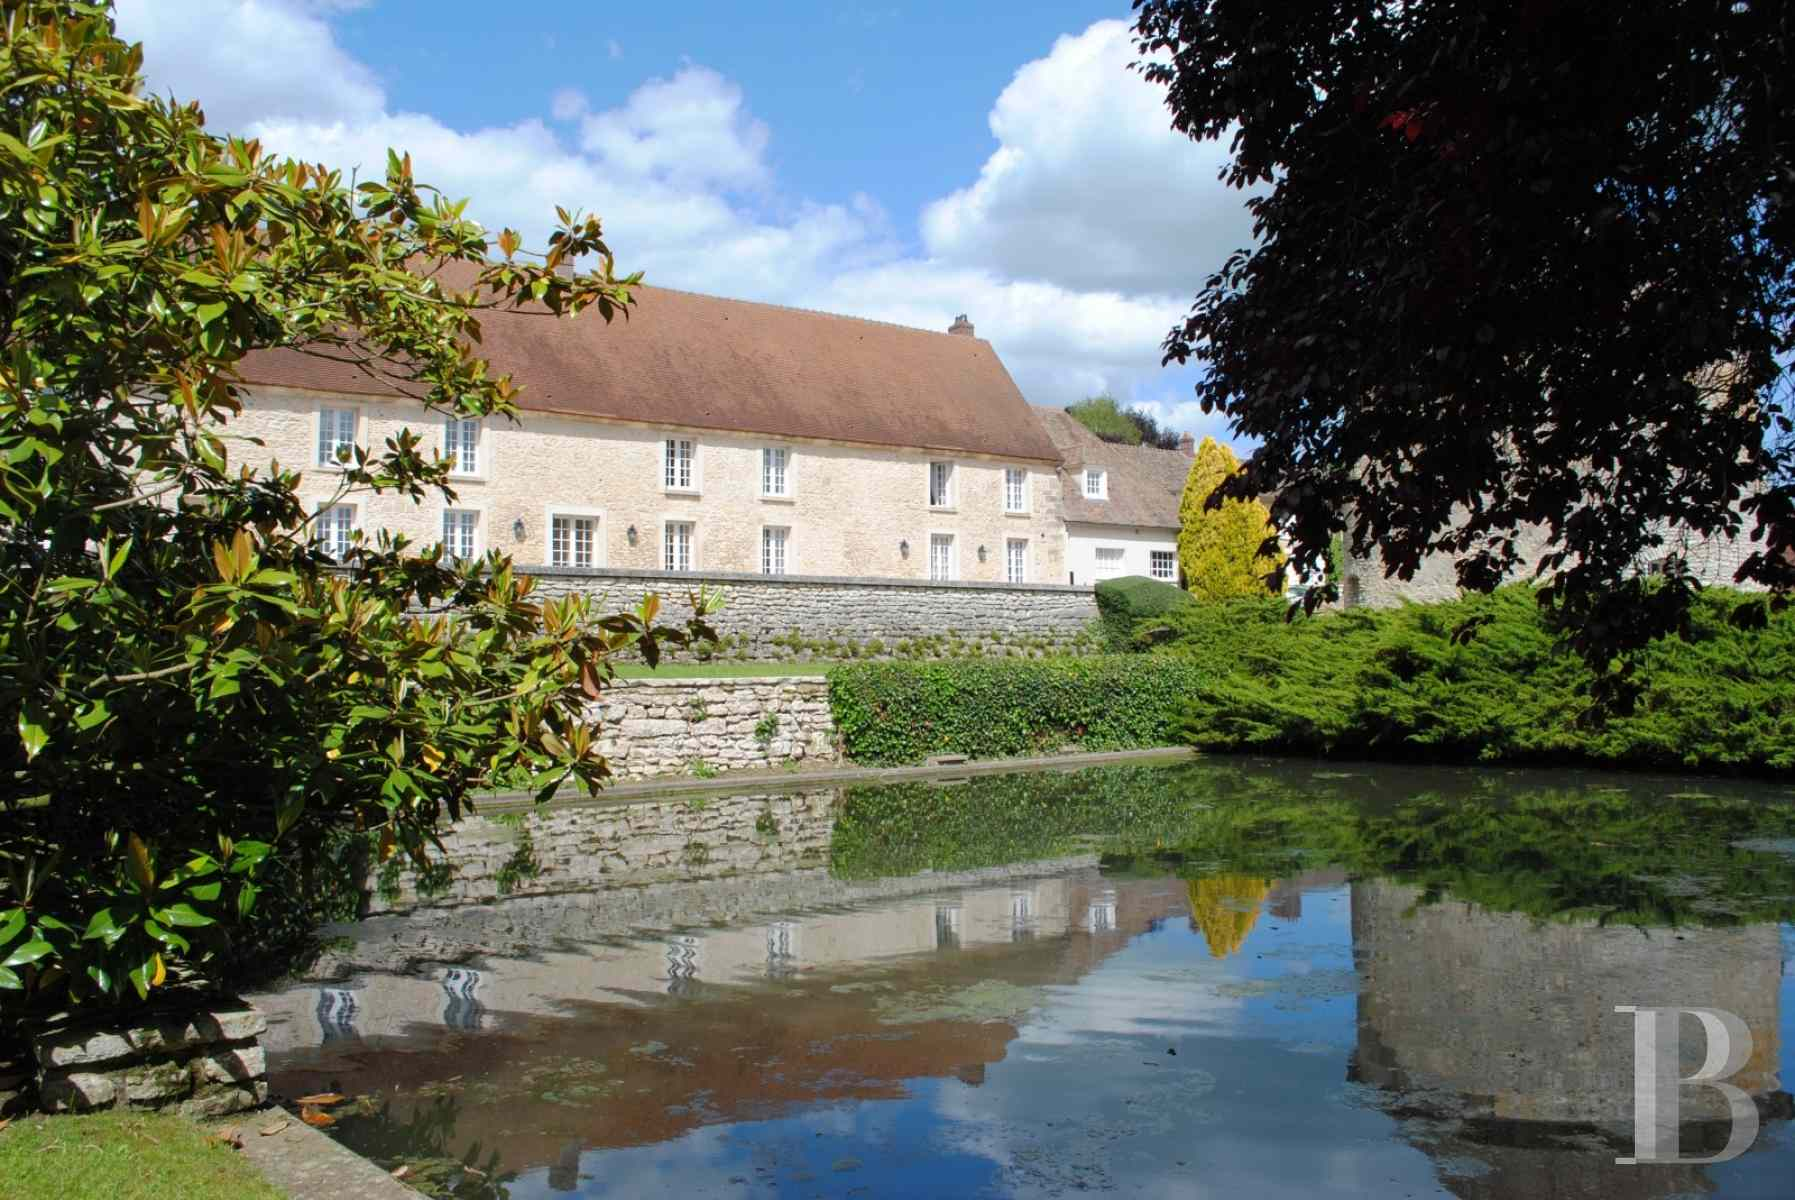 french farms for sale picardy vexin seigneurial - 1 zoom